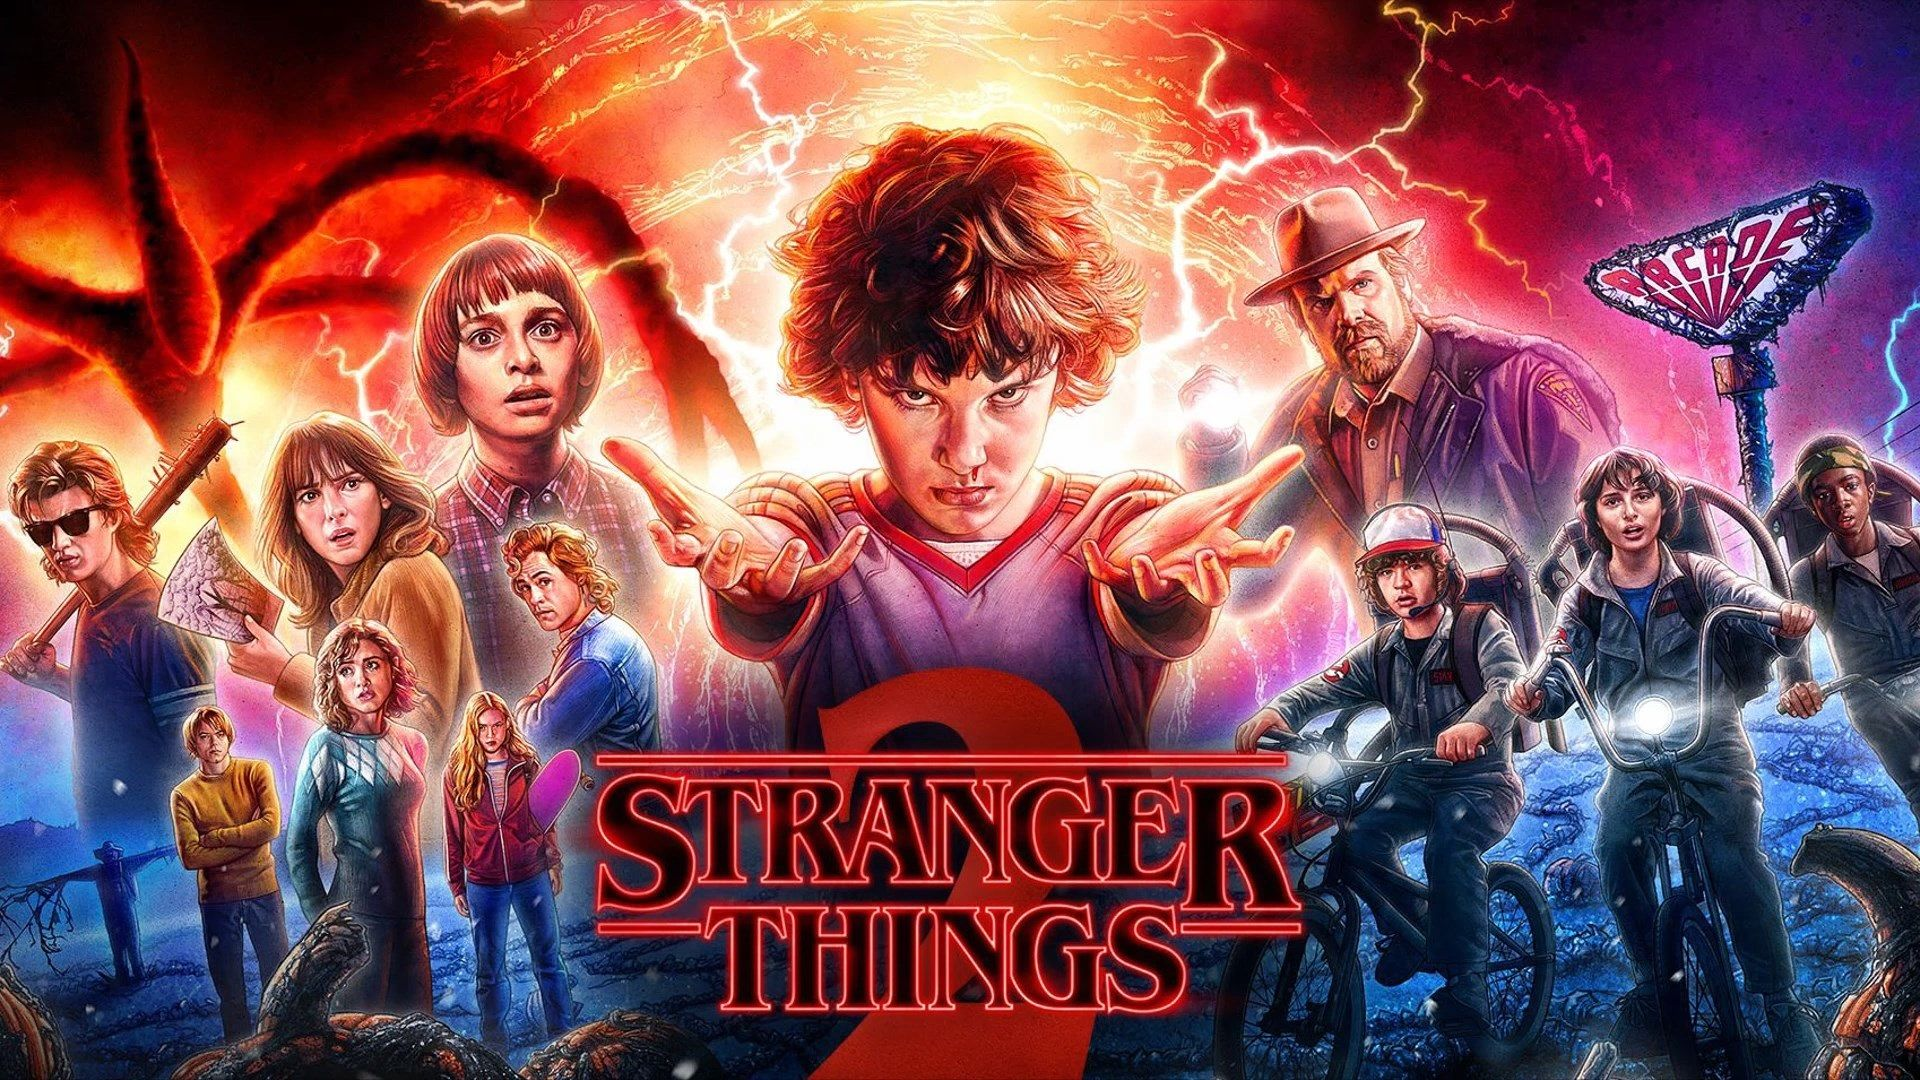 1920x1080 stranger things desktop background wallpaper hd